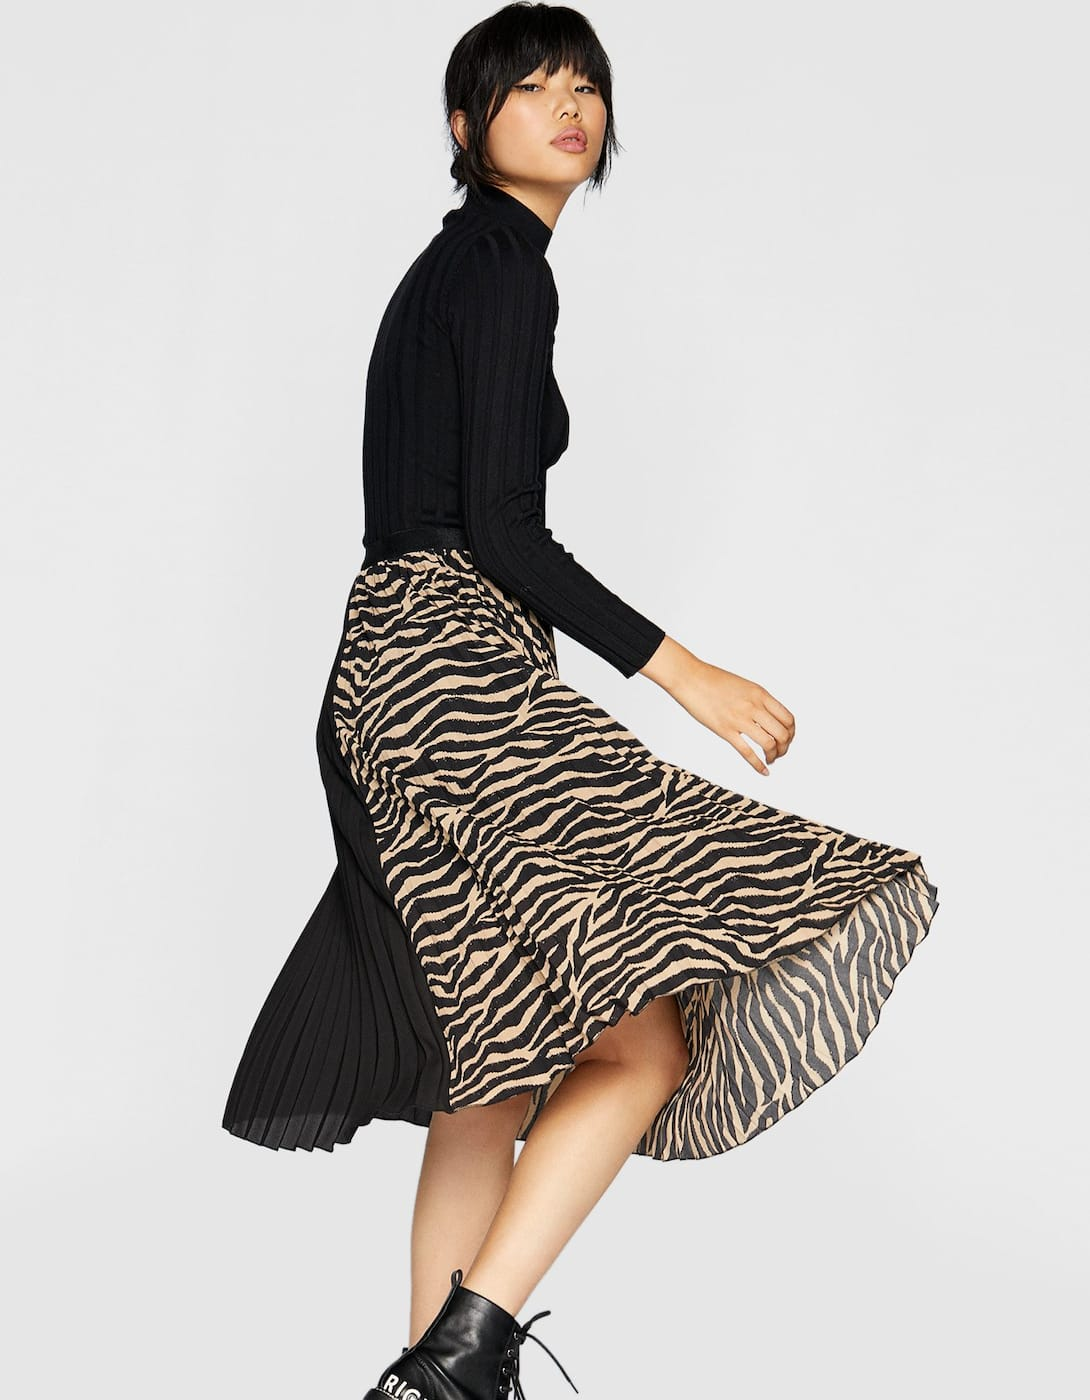 Leopard Print Midi Skirt - My Top High Street Finds #3 - The Autumn Edit // Lauren Rose Style // Fashion Blogger London Wishlist